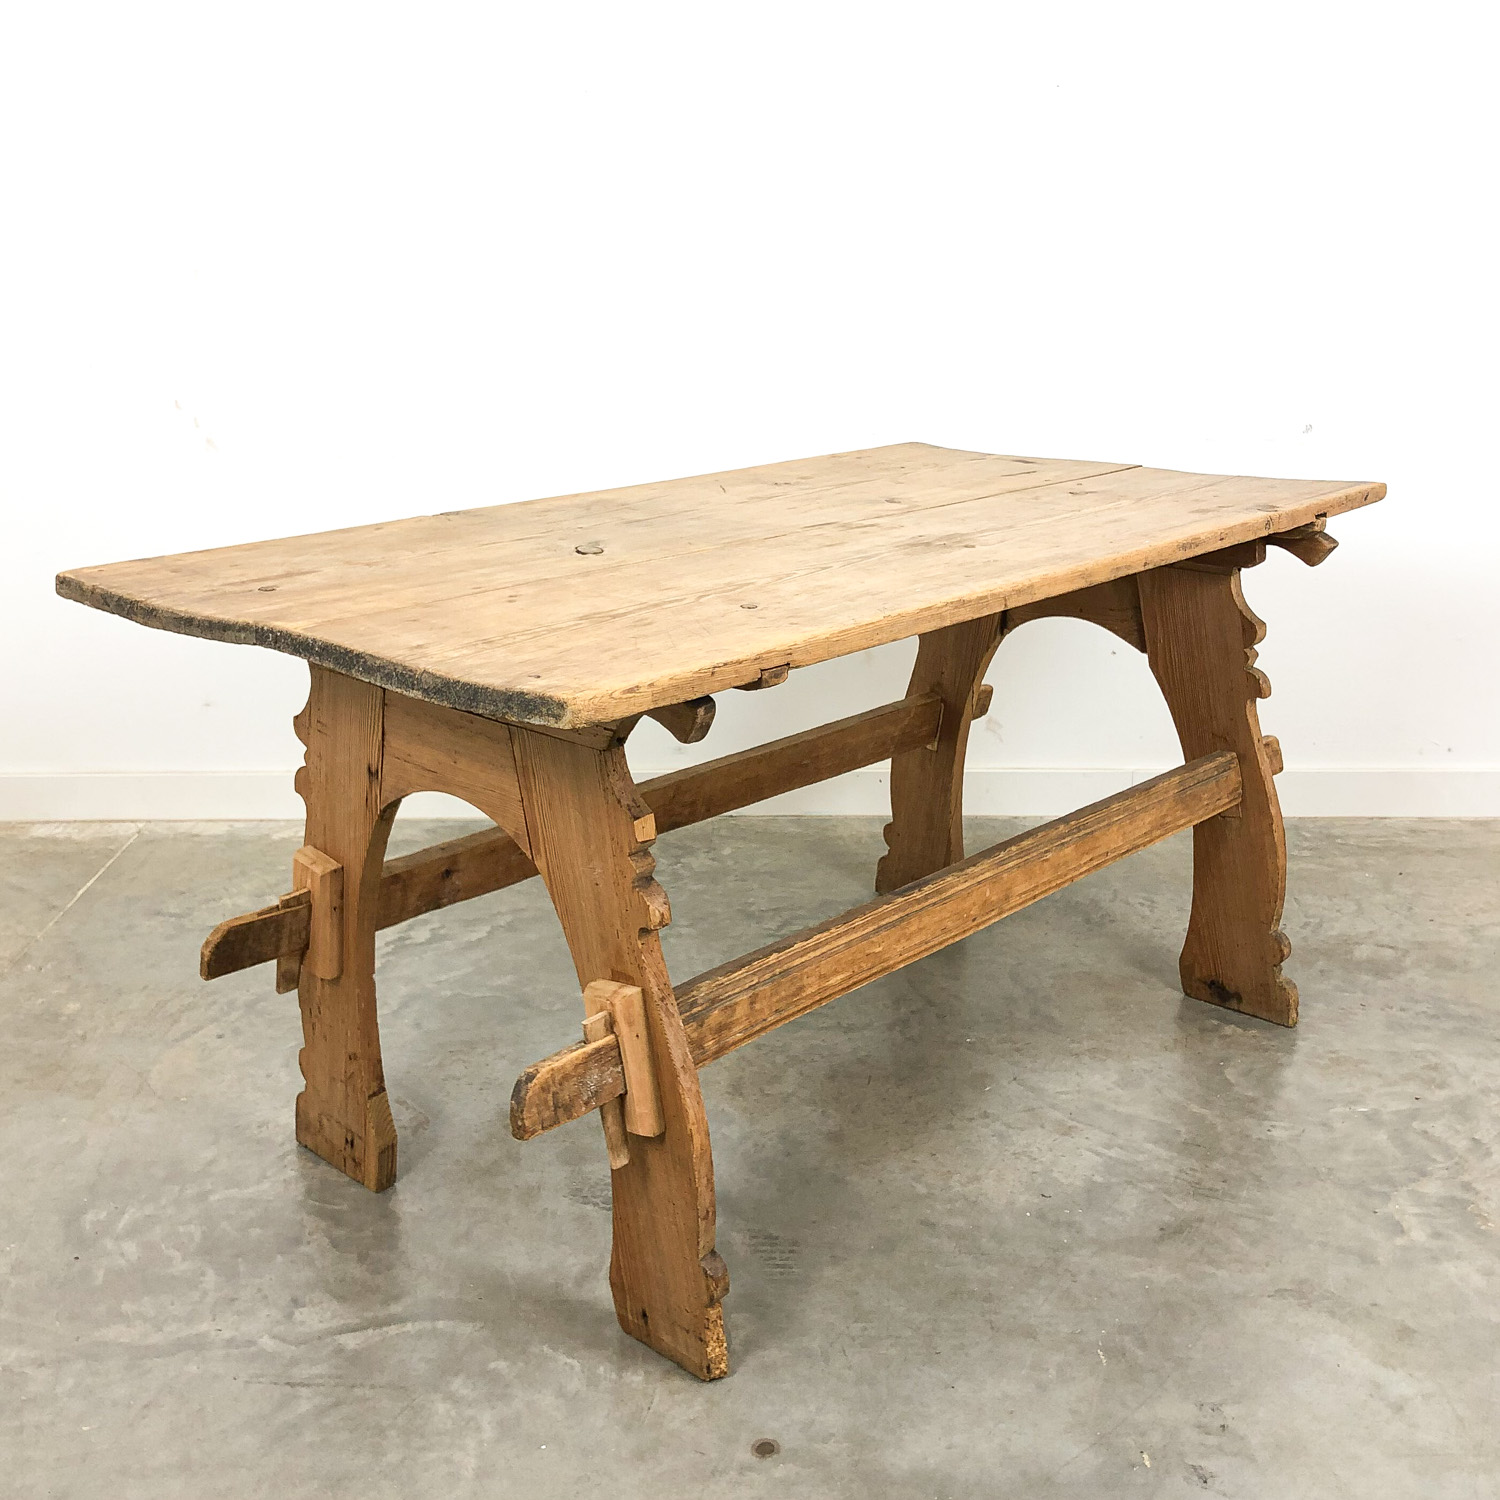 Swedish antique pine wooden farmhouse table